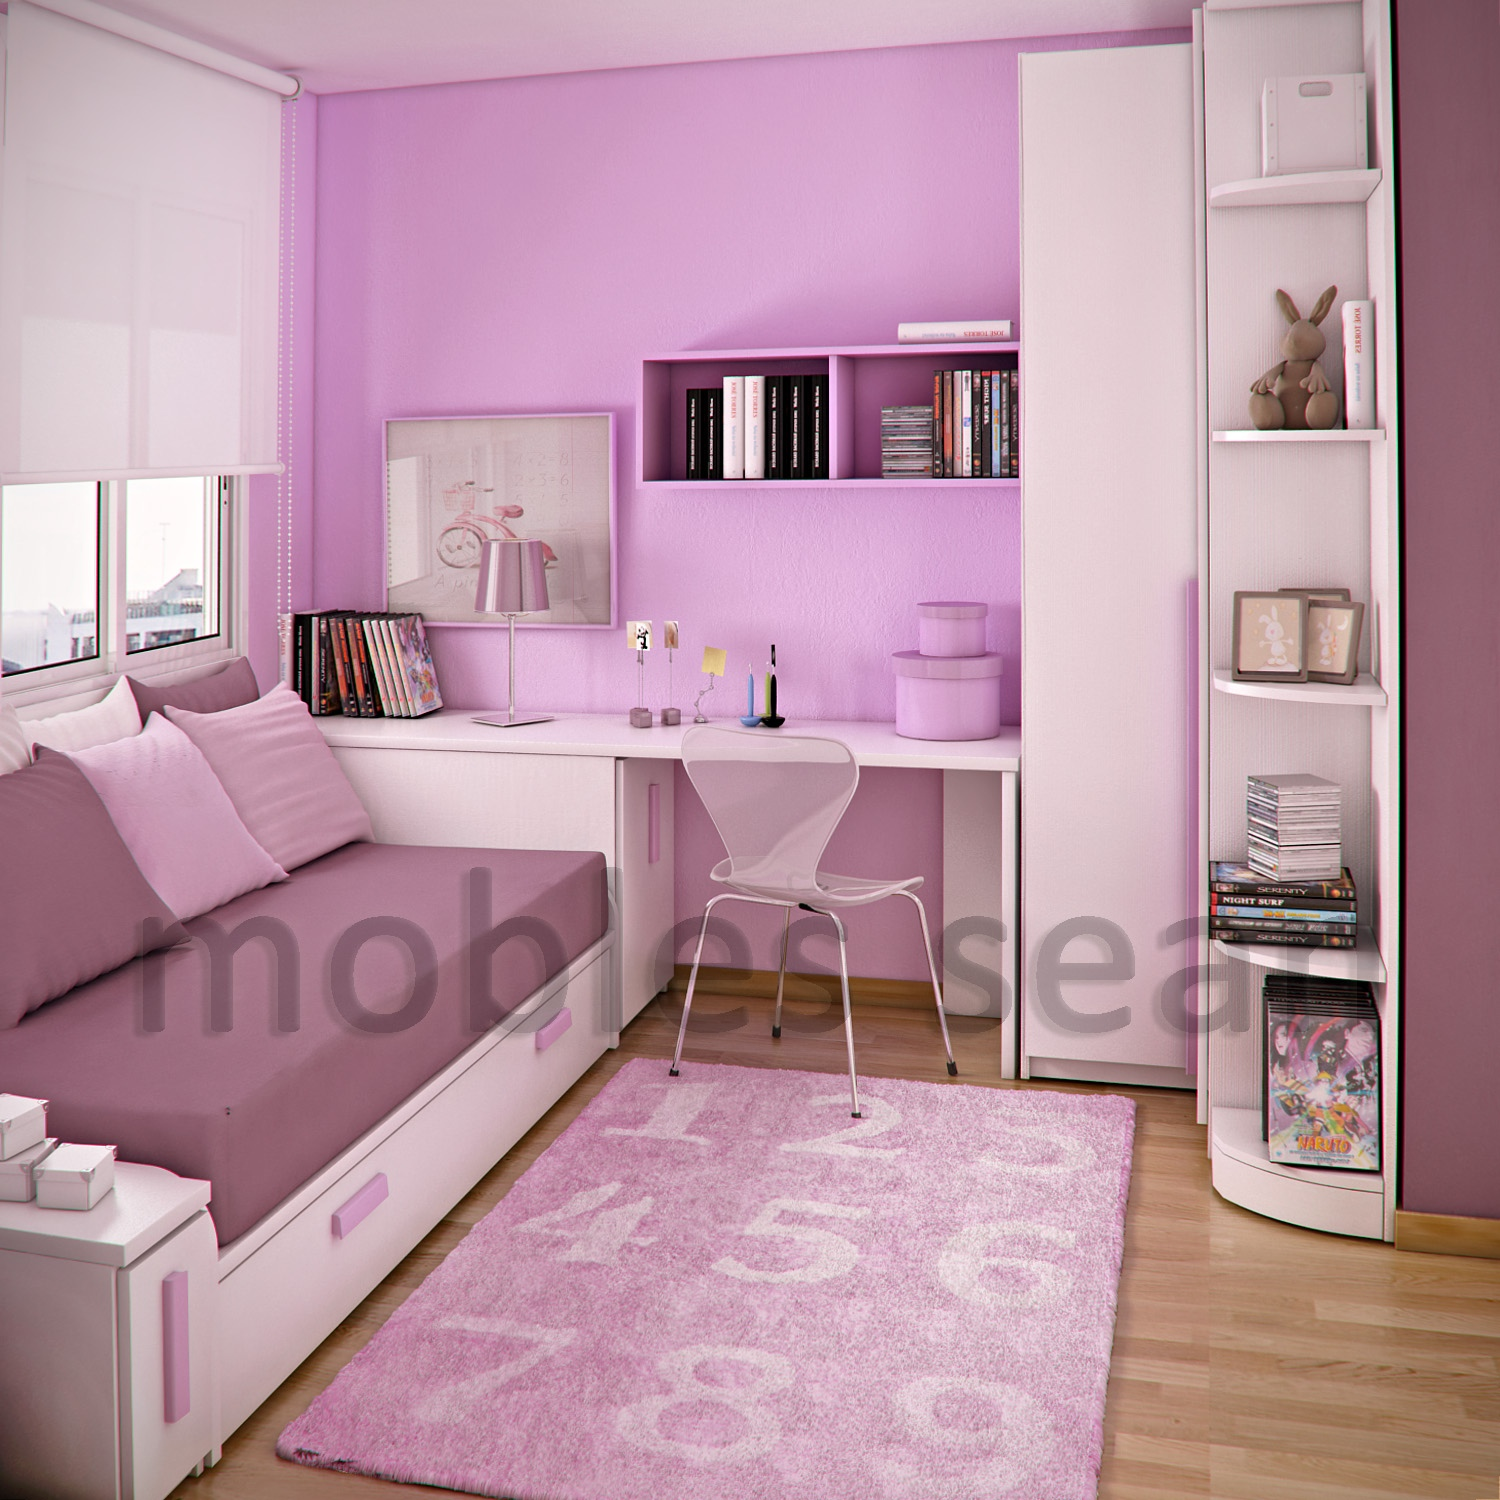 Amazing Girls Room Ideas for Small Spaces for Kids 1500 x 1500 · 596 kB · jpeg